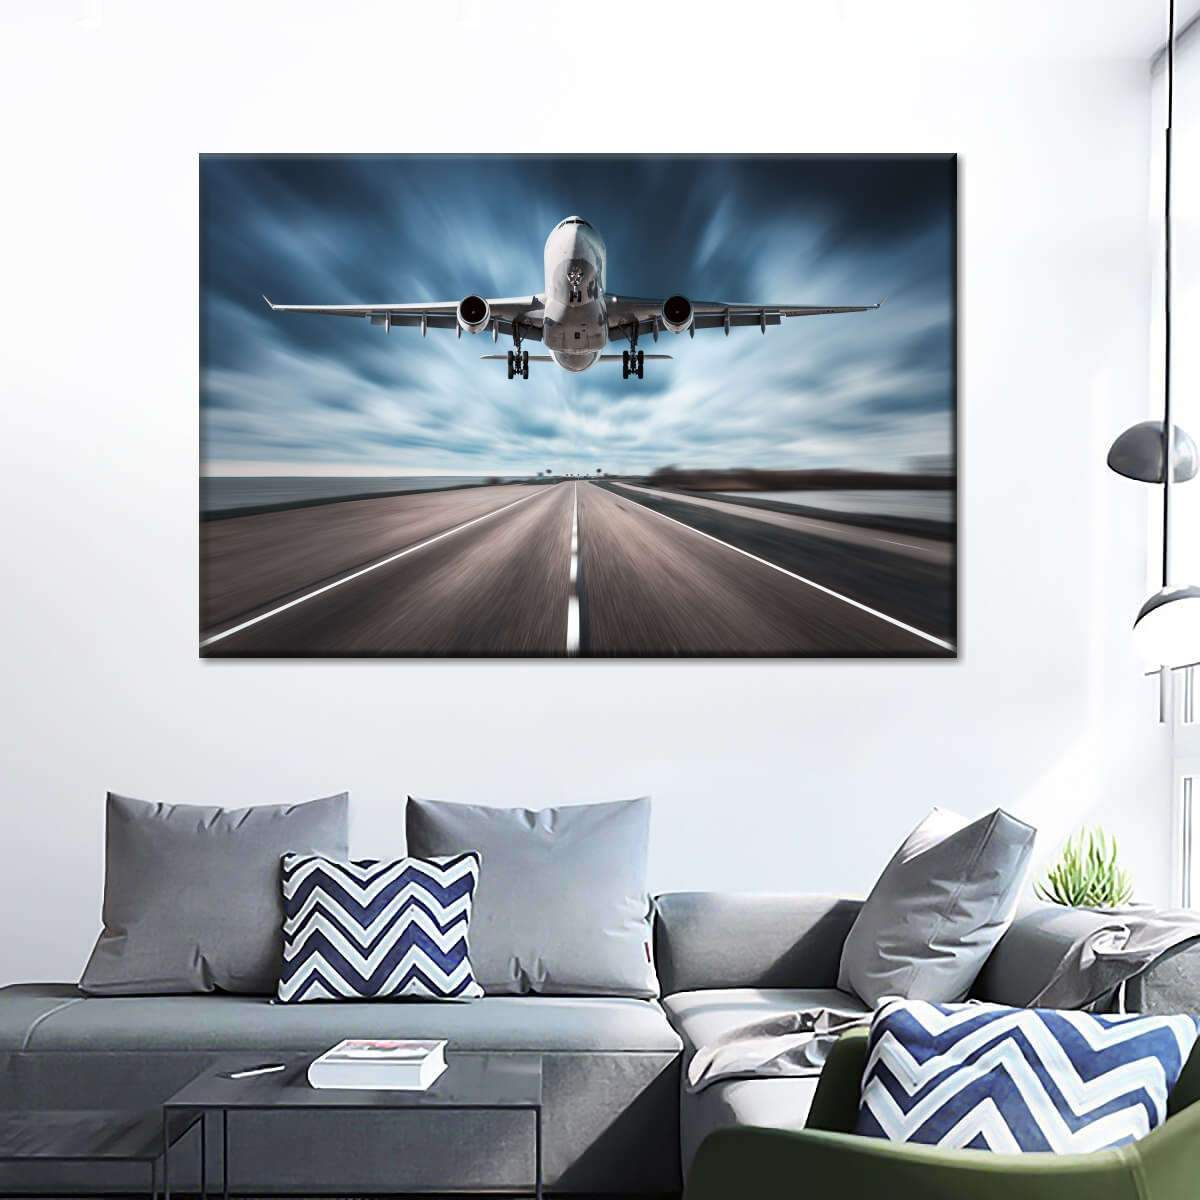 Swift Airplane Takeoff Multi Panel Canvas Wall Art In 2020 Canvas Wall Art Multi Panel Canvas Wall Art